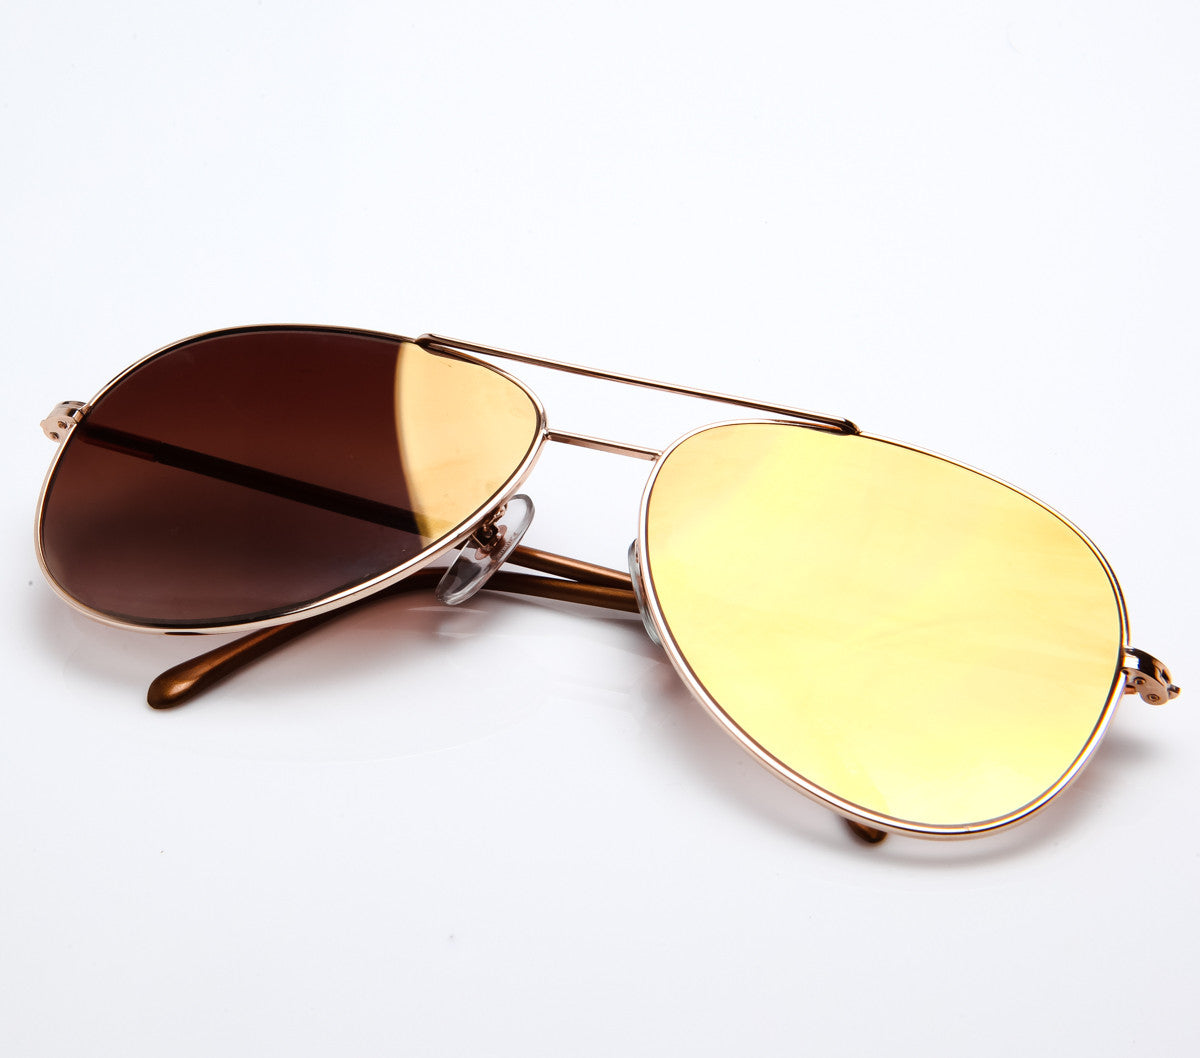 cf450b8e81a Vf vintage frames scarface brown gradient flash gold flat lens jpg  1200x1058 The original scarface sunglasses